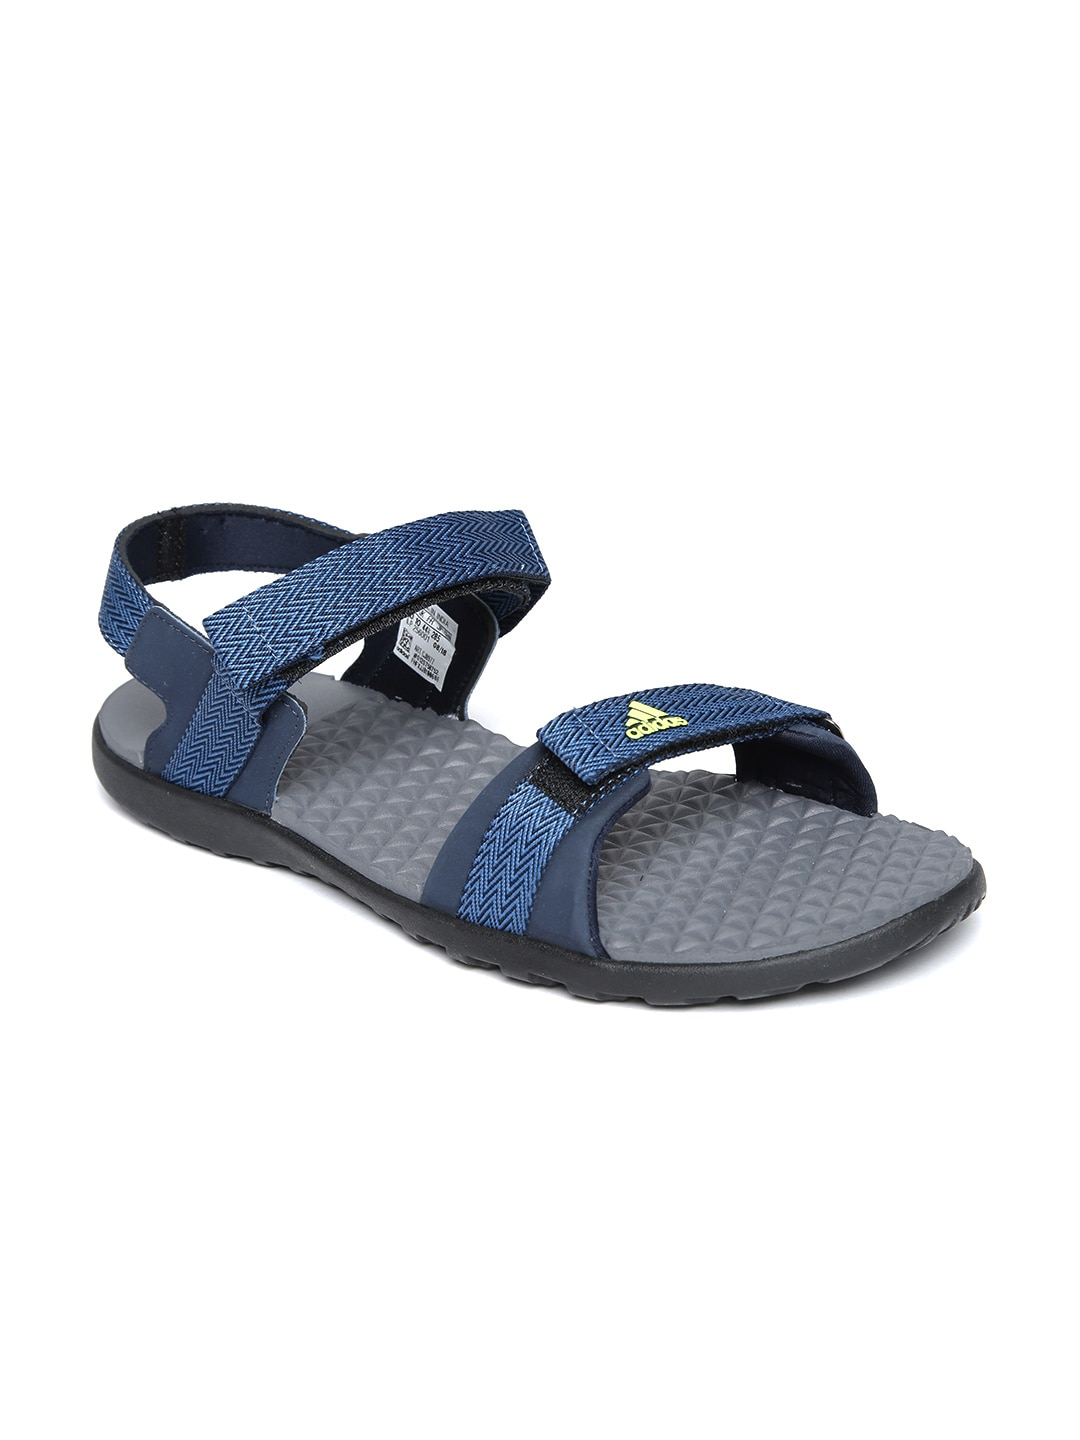 a269534c5d87 Men Sandal Of Adidas Sports - Buy Men Sandal Of Adidas Sports online in  India